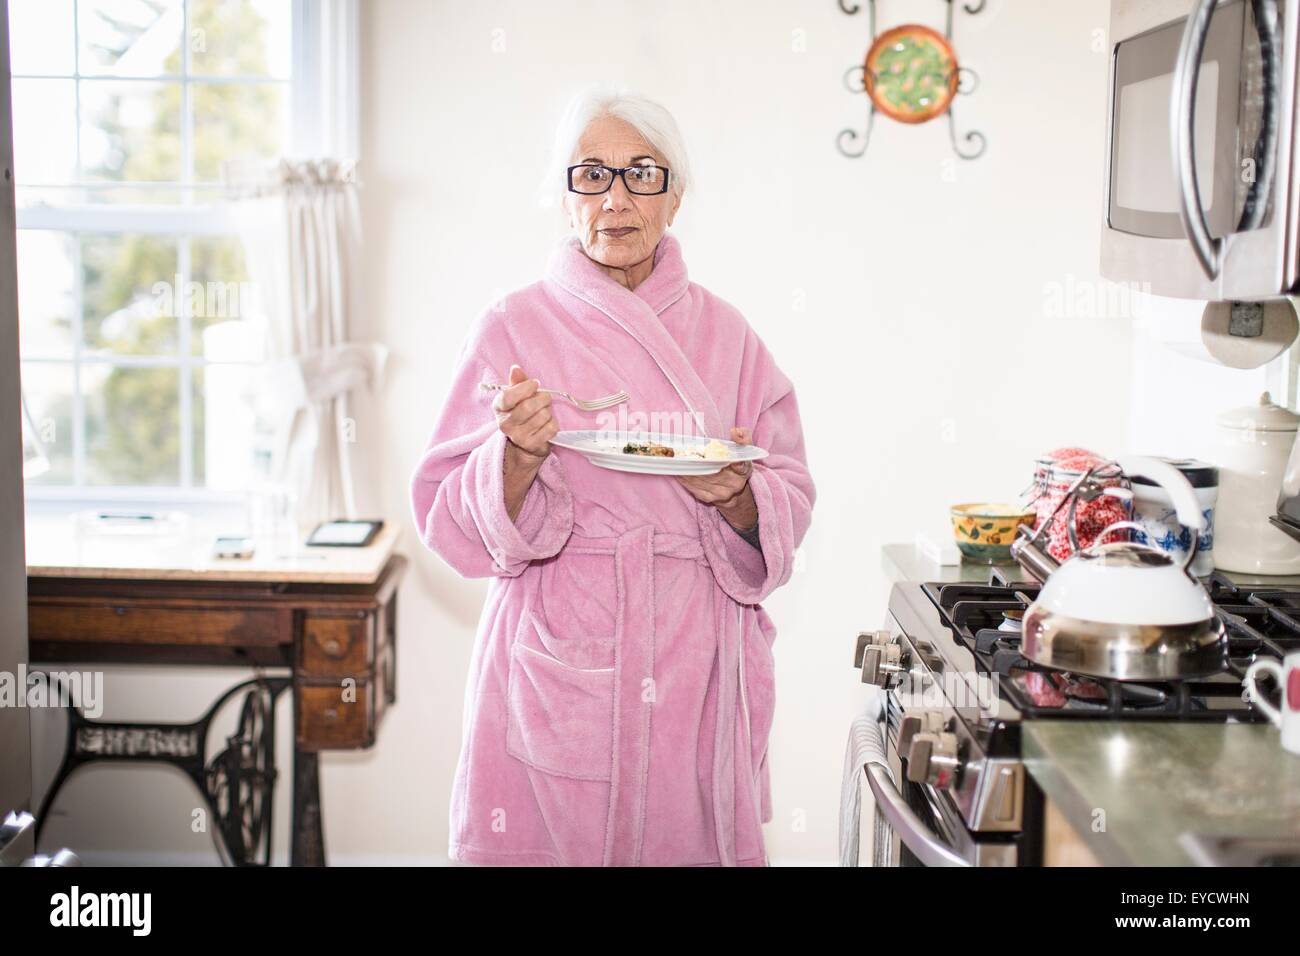 Senior woman standing in kitchen holding plate of food - Stock Image